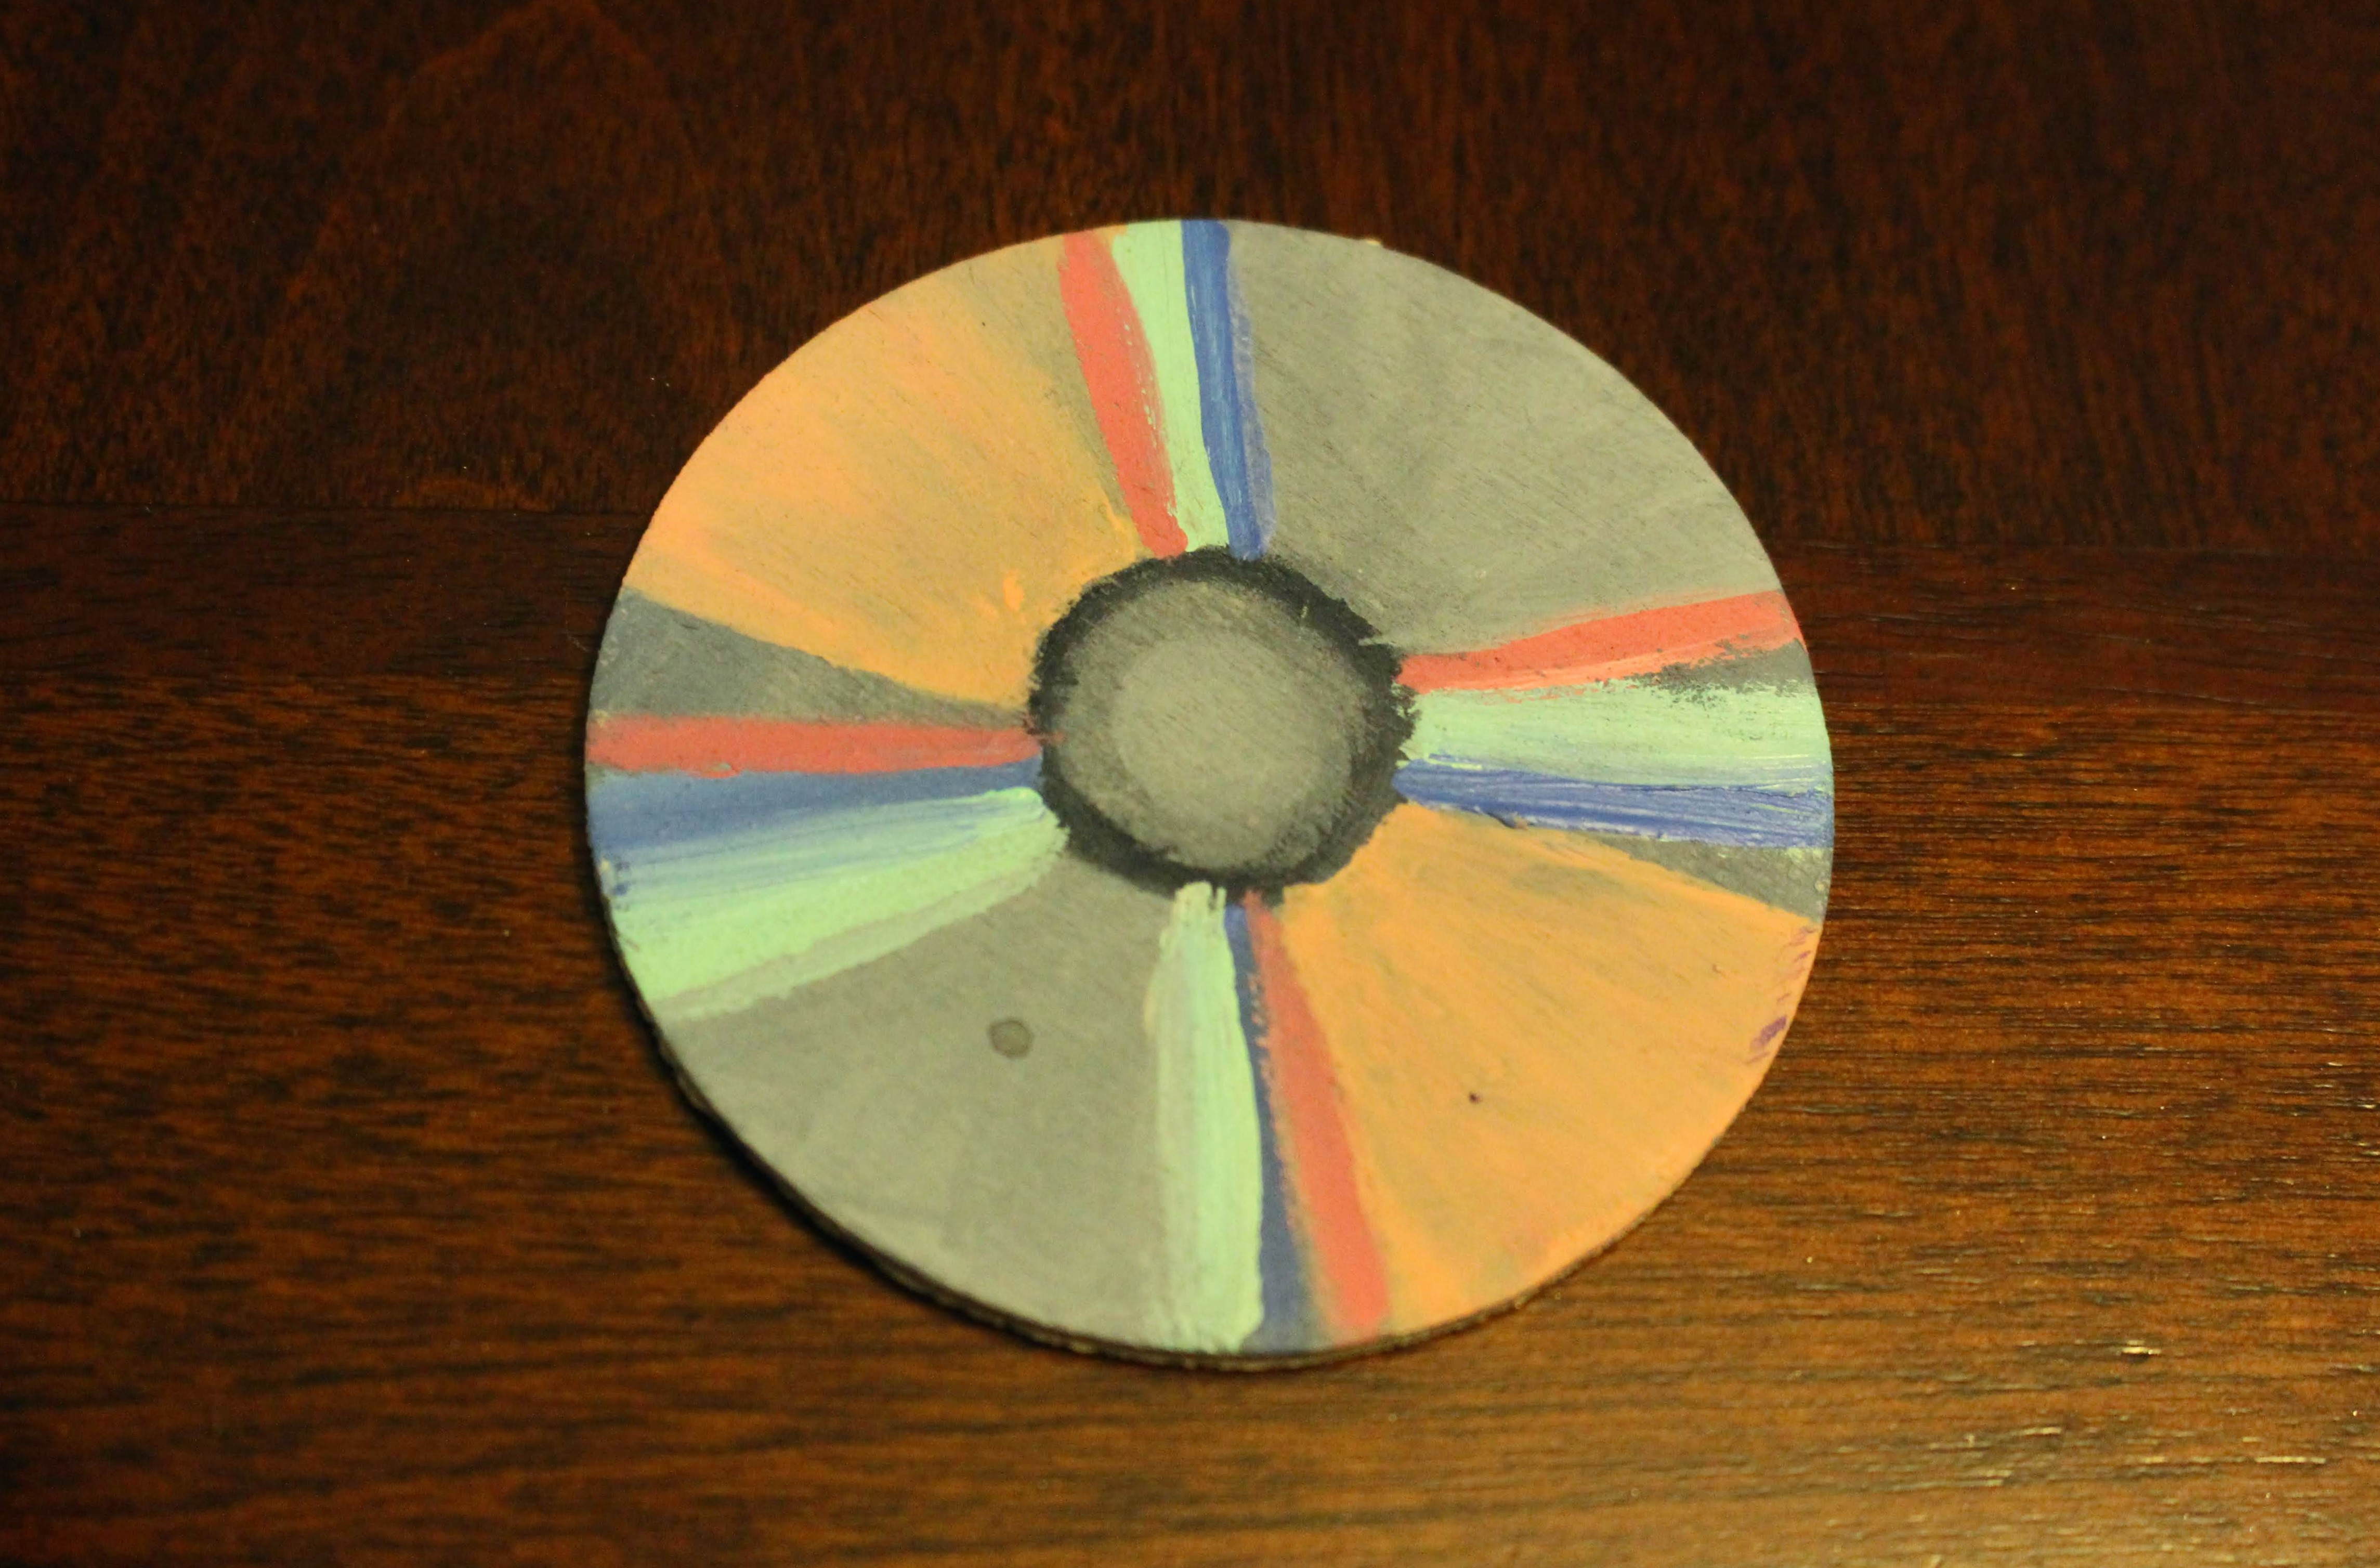 This is a painting of a CD. This was created from using acrylic on wood. This is a part of four other pieces in the kit which represent five types of devices that we used to consume hip-hop throughout the times. The CD in particular I associated with the 1990s.